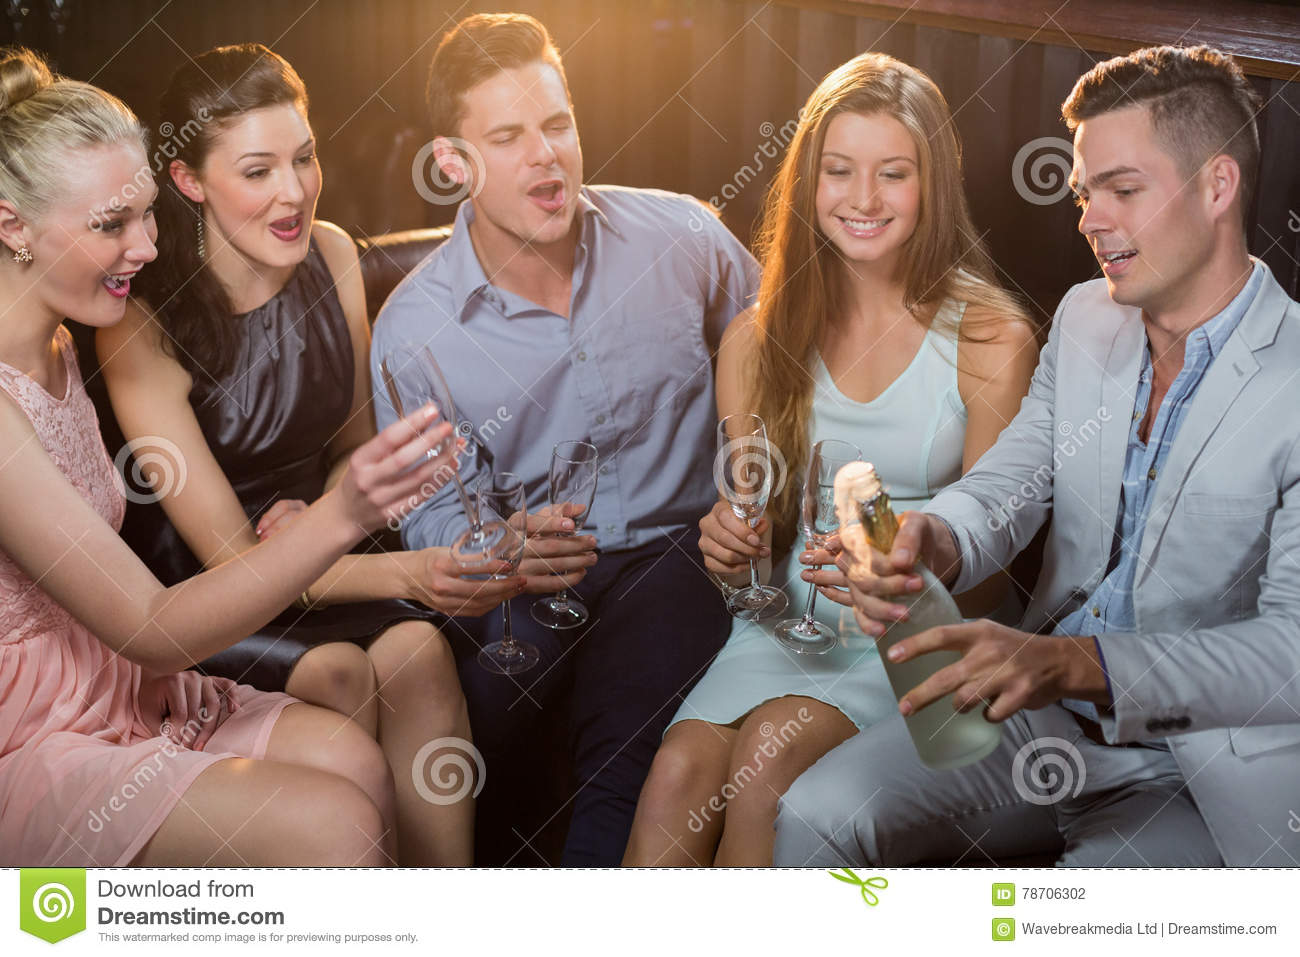 Man popping a champagne bottle while friends watching him